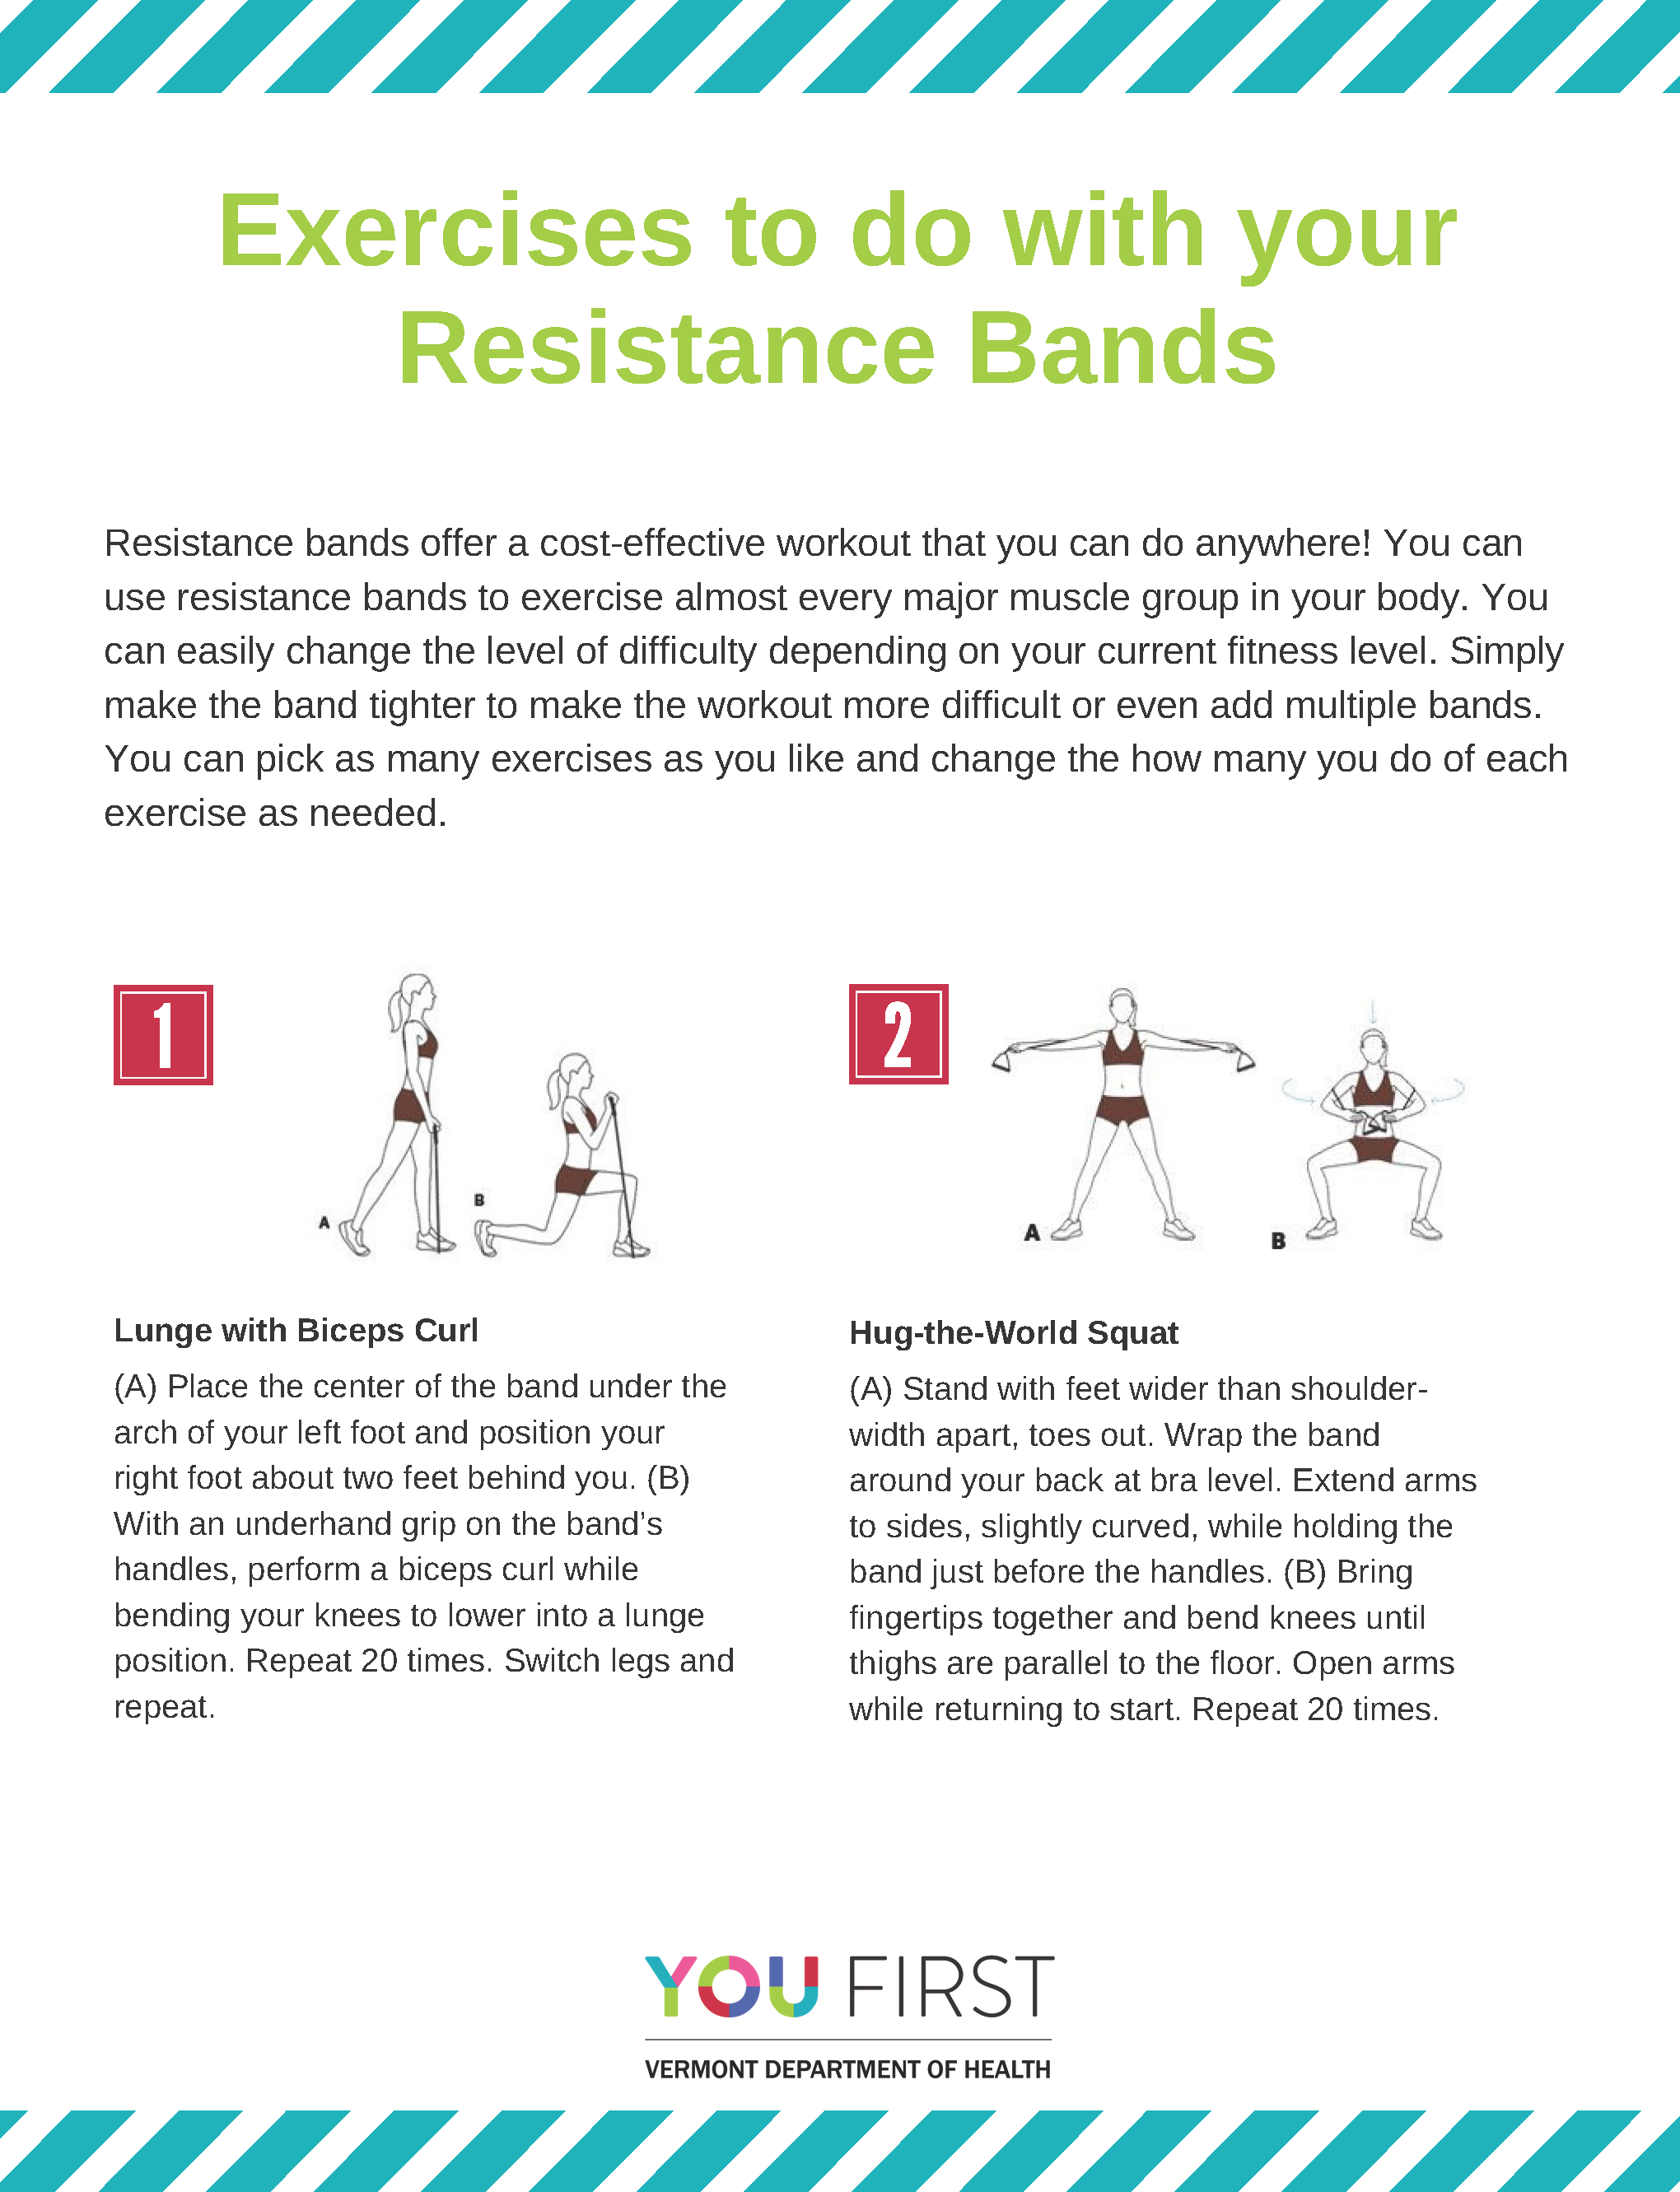 Exercises to do with resistance bands handout